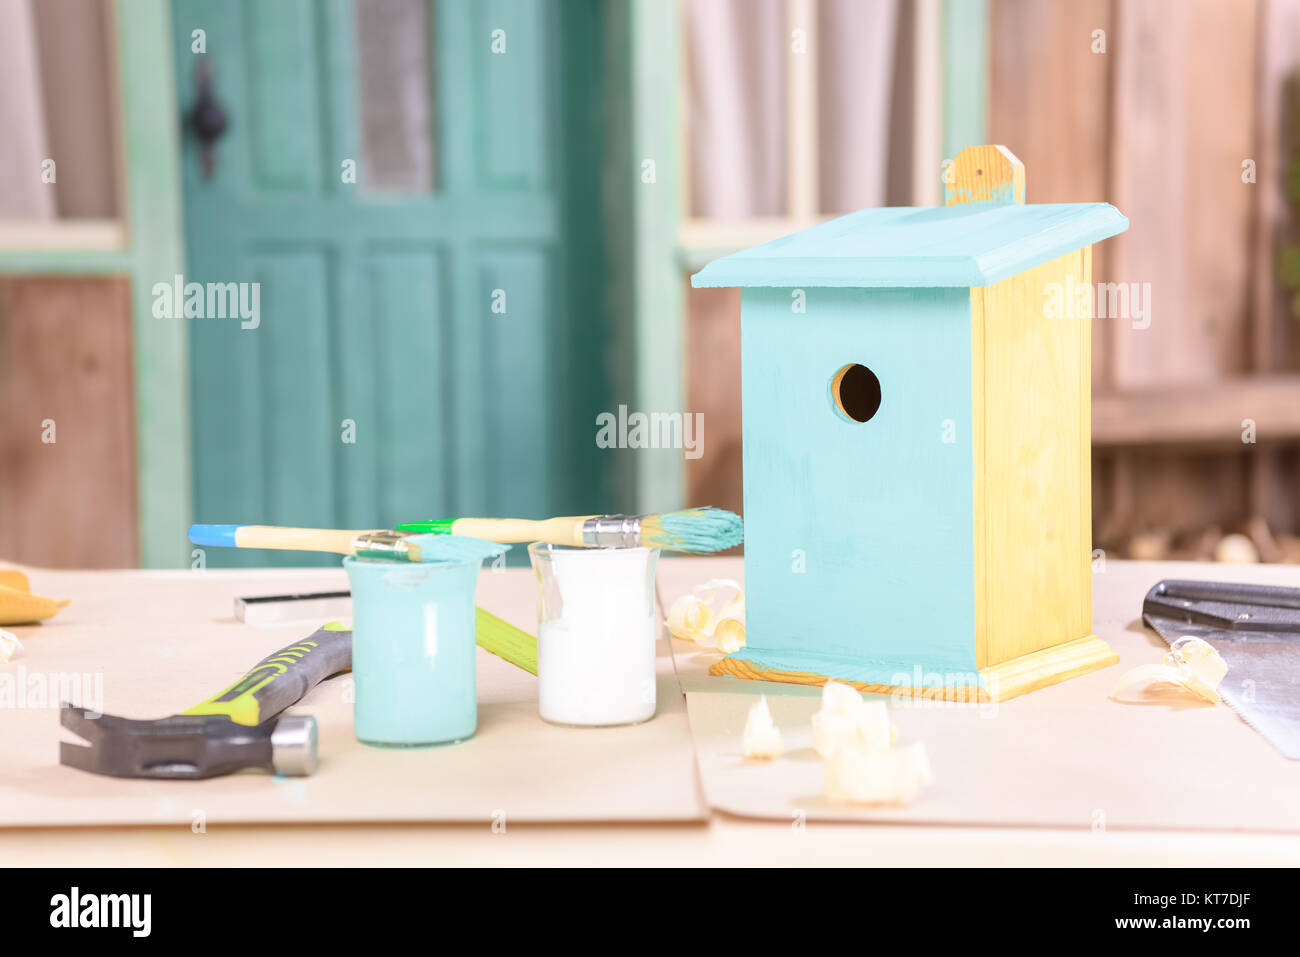 Close-up view of handmade small birdhouse with paints and tools on table - Stock Image